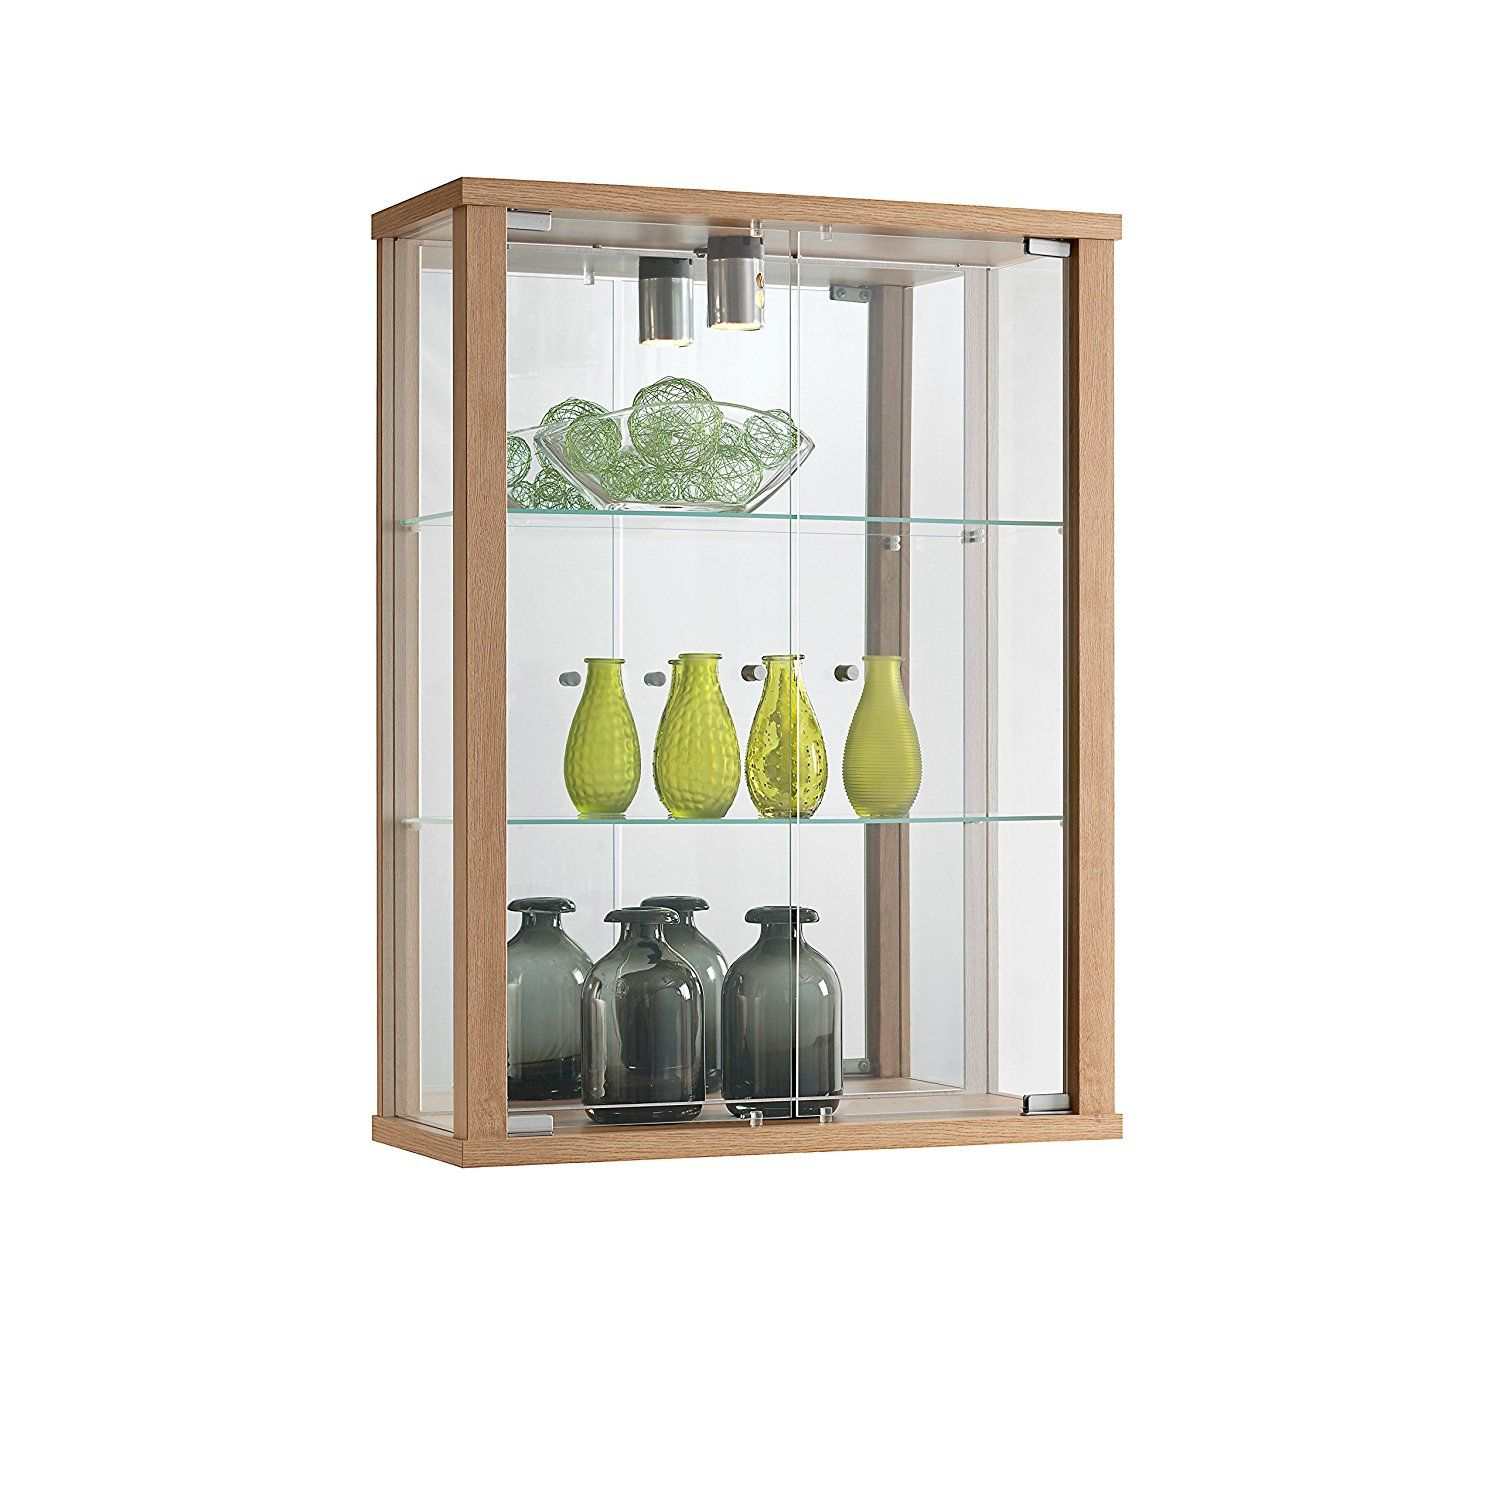 Entry Plus Wall Mounted Lockable Glass Display Cabinet In Various